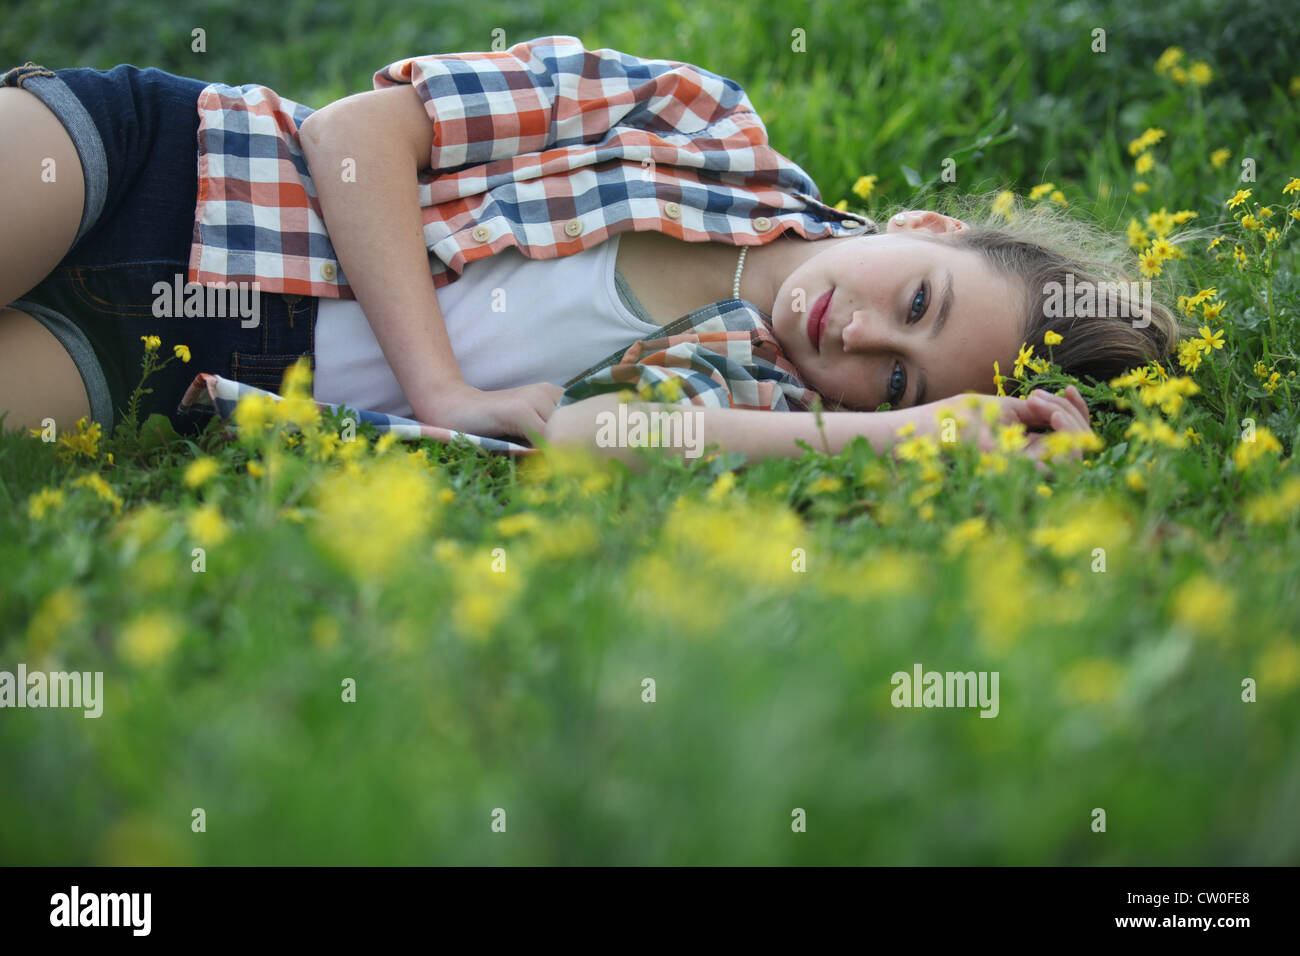 Woman laying in field of flowers Stock Photo